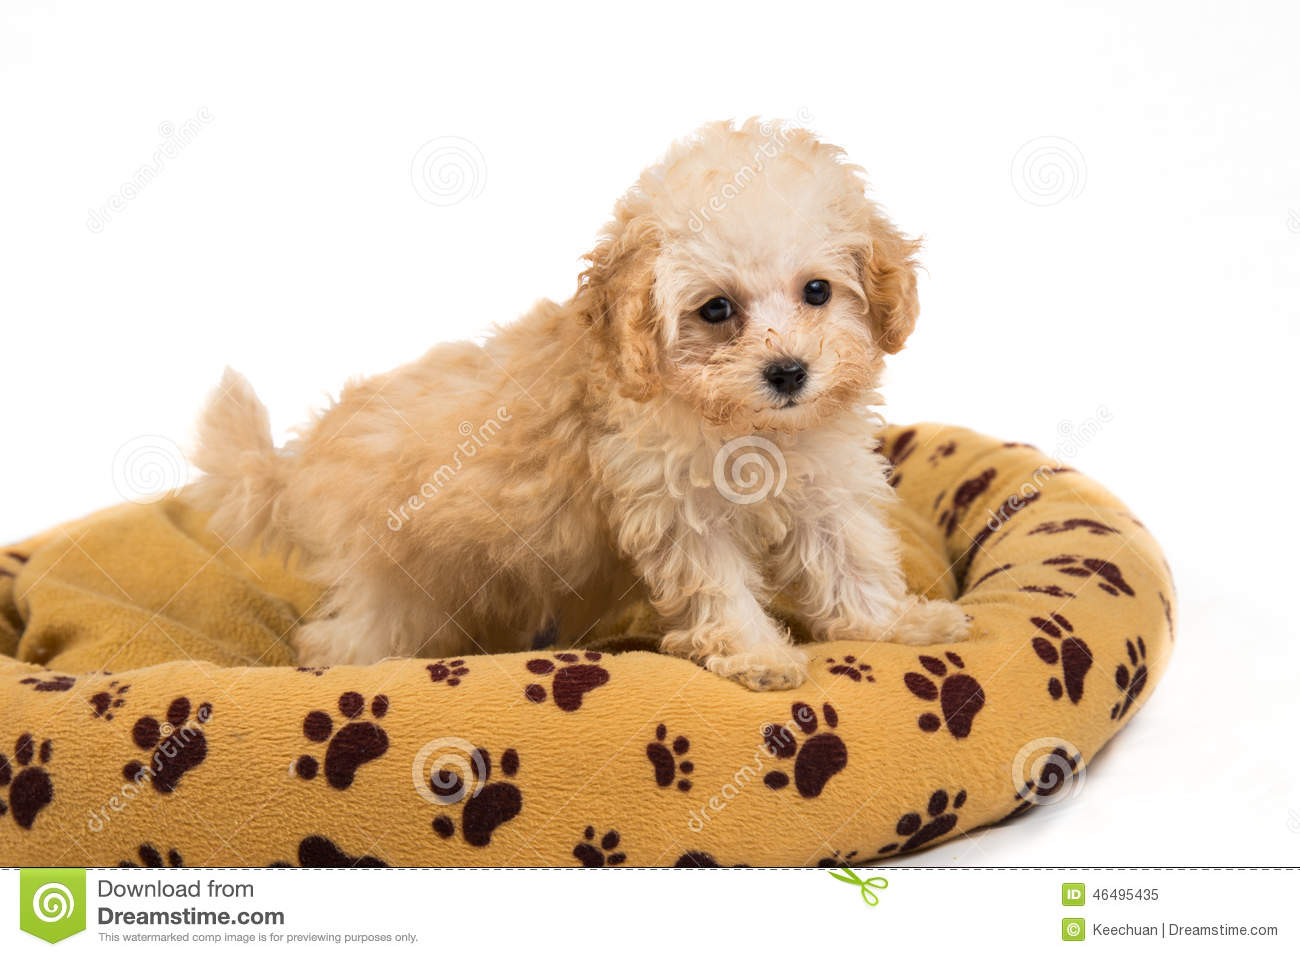 Cute and curious poodle puppy standing on her bed